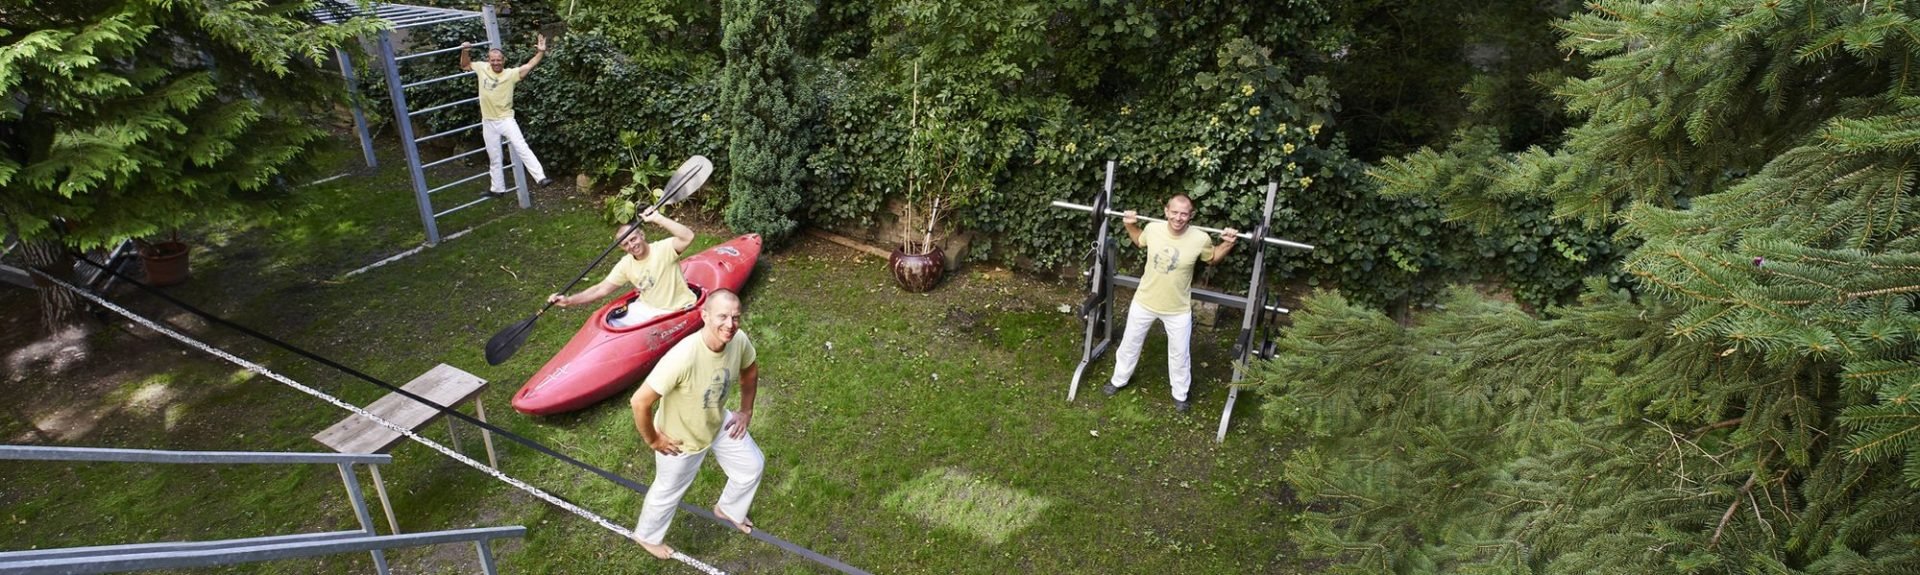 physiotherapie-garten